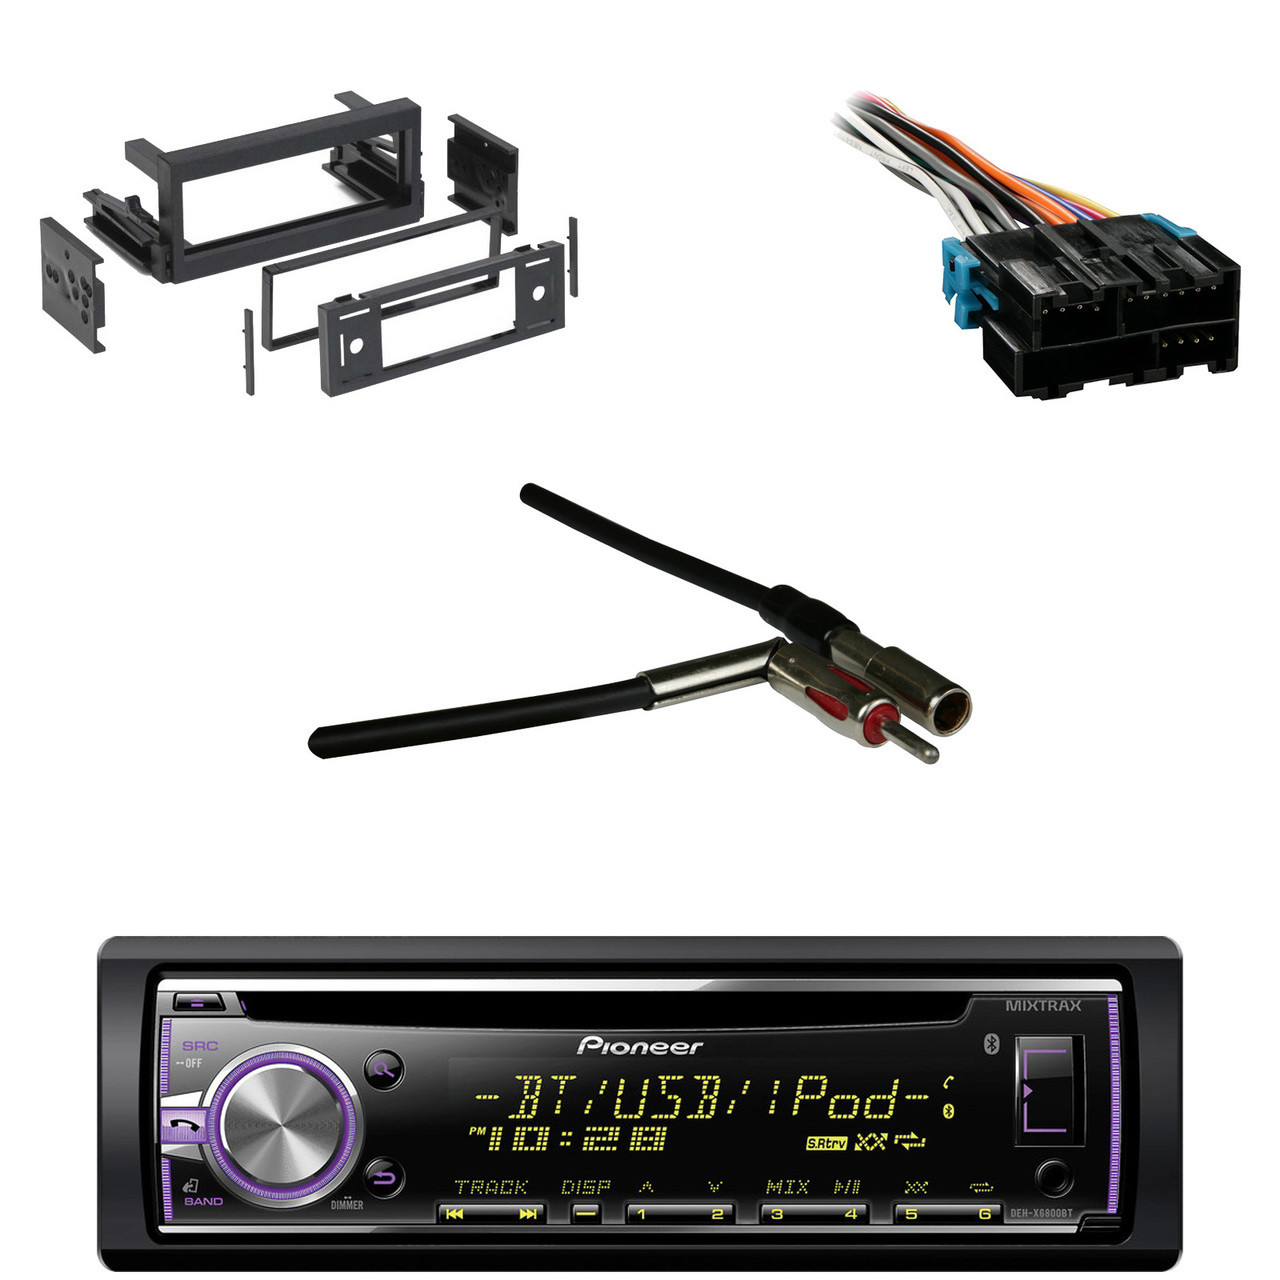 small resolution of bluetooth pioneer cd car receiver gm wire harness antenna adapter metra din kit road entertainment